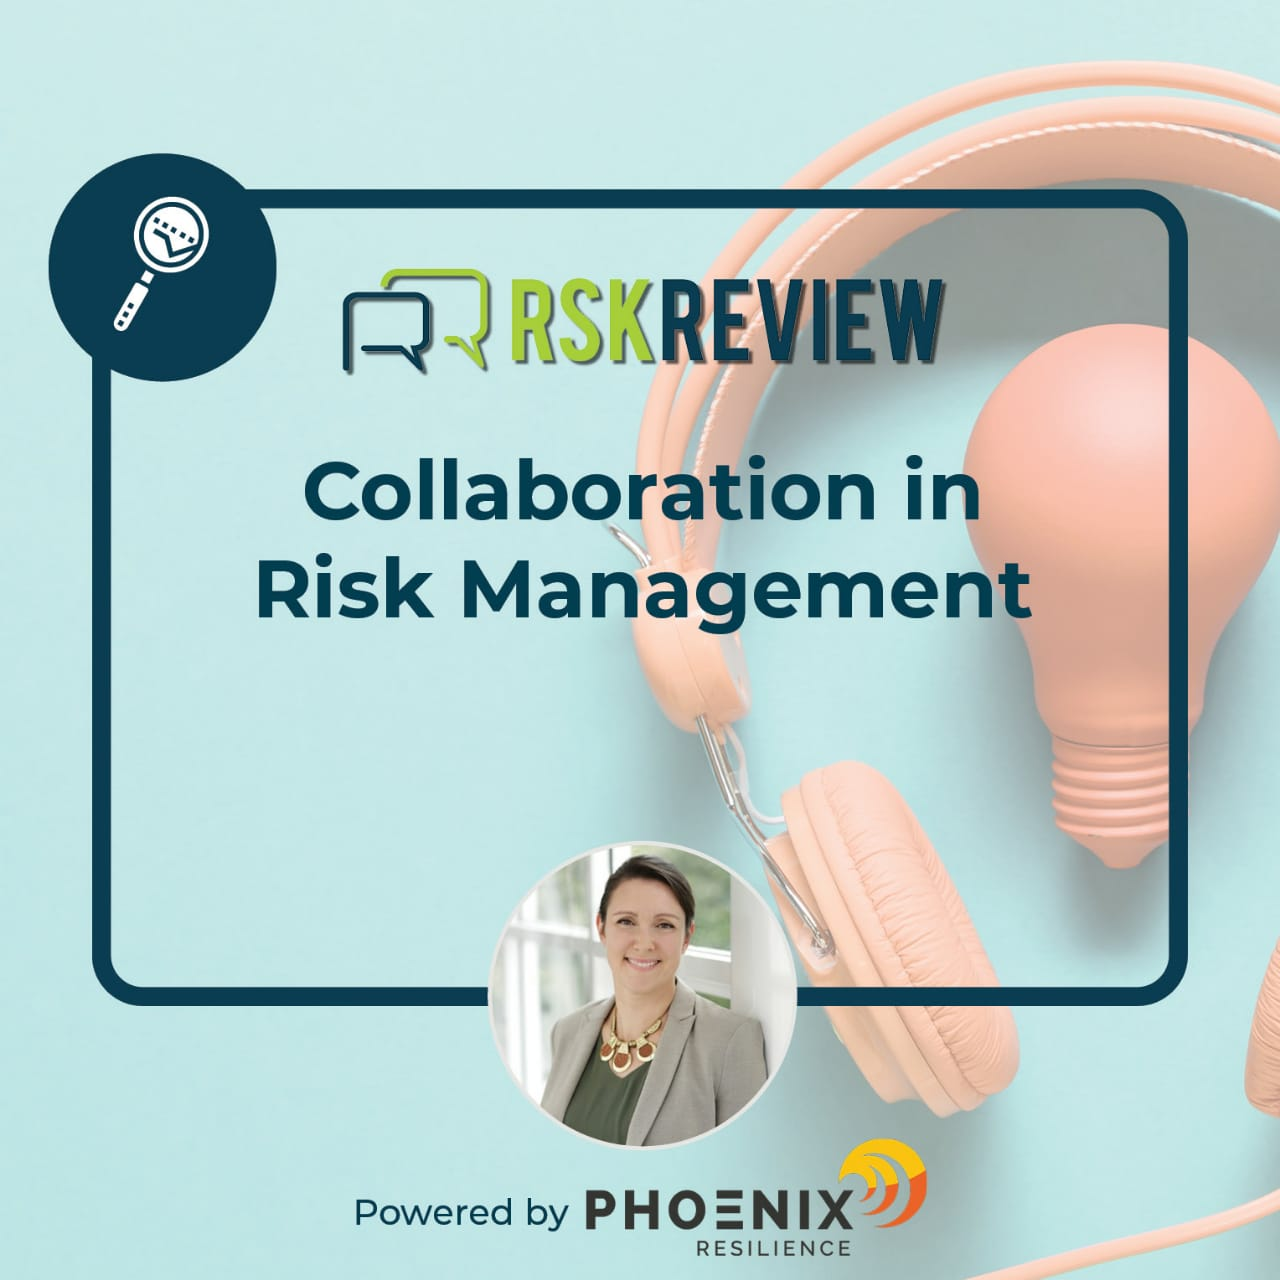 Collaboration in Risk Management